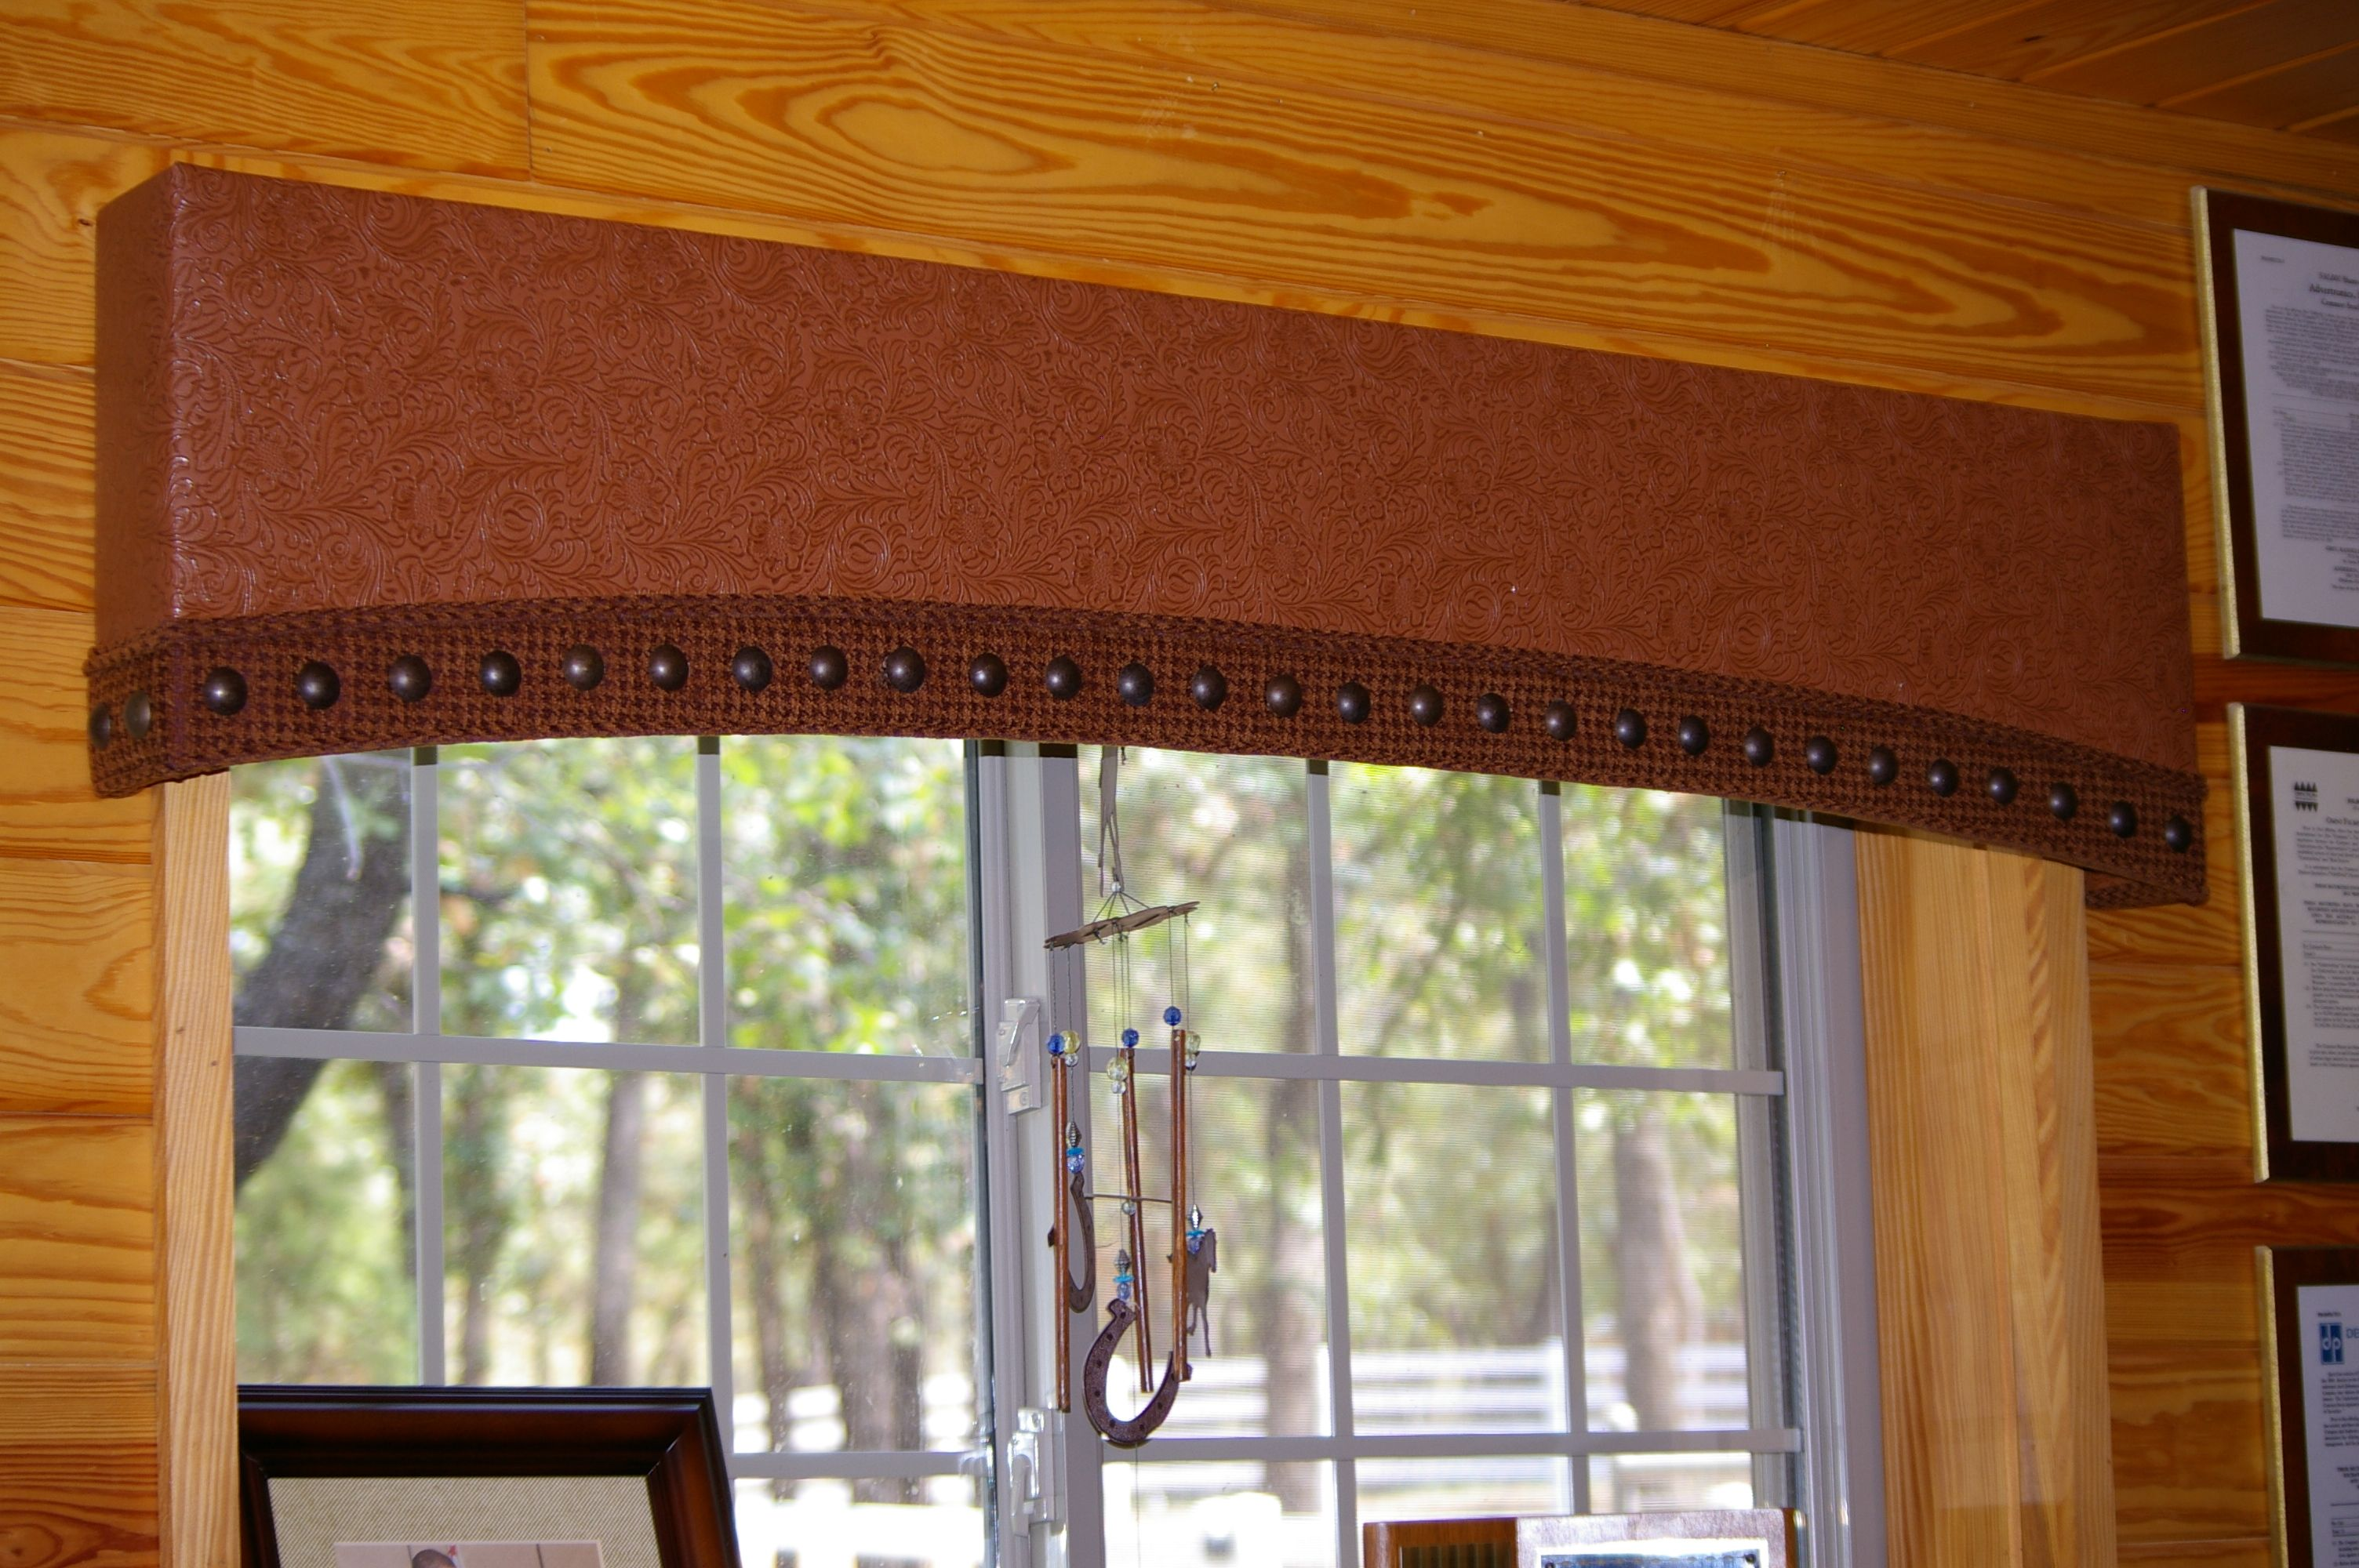 Rustic kitchen window treatments  rusticwestern cornice board  western stuff  pinterest  cornice